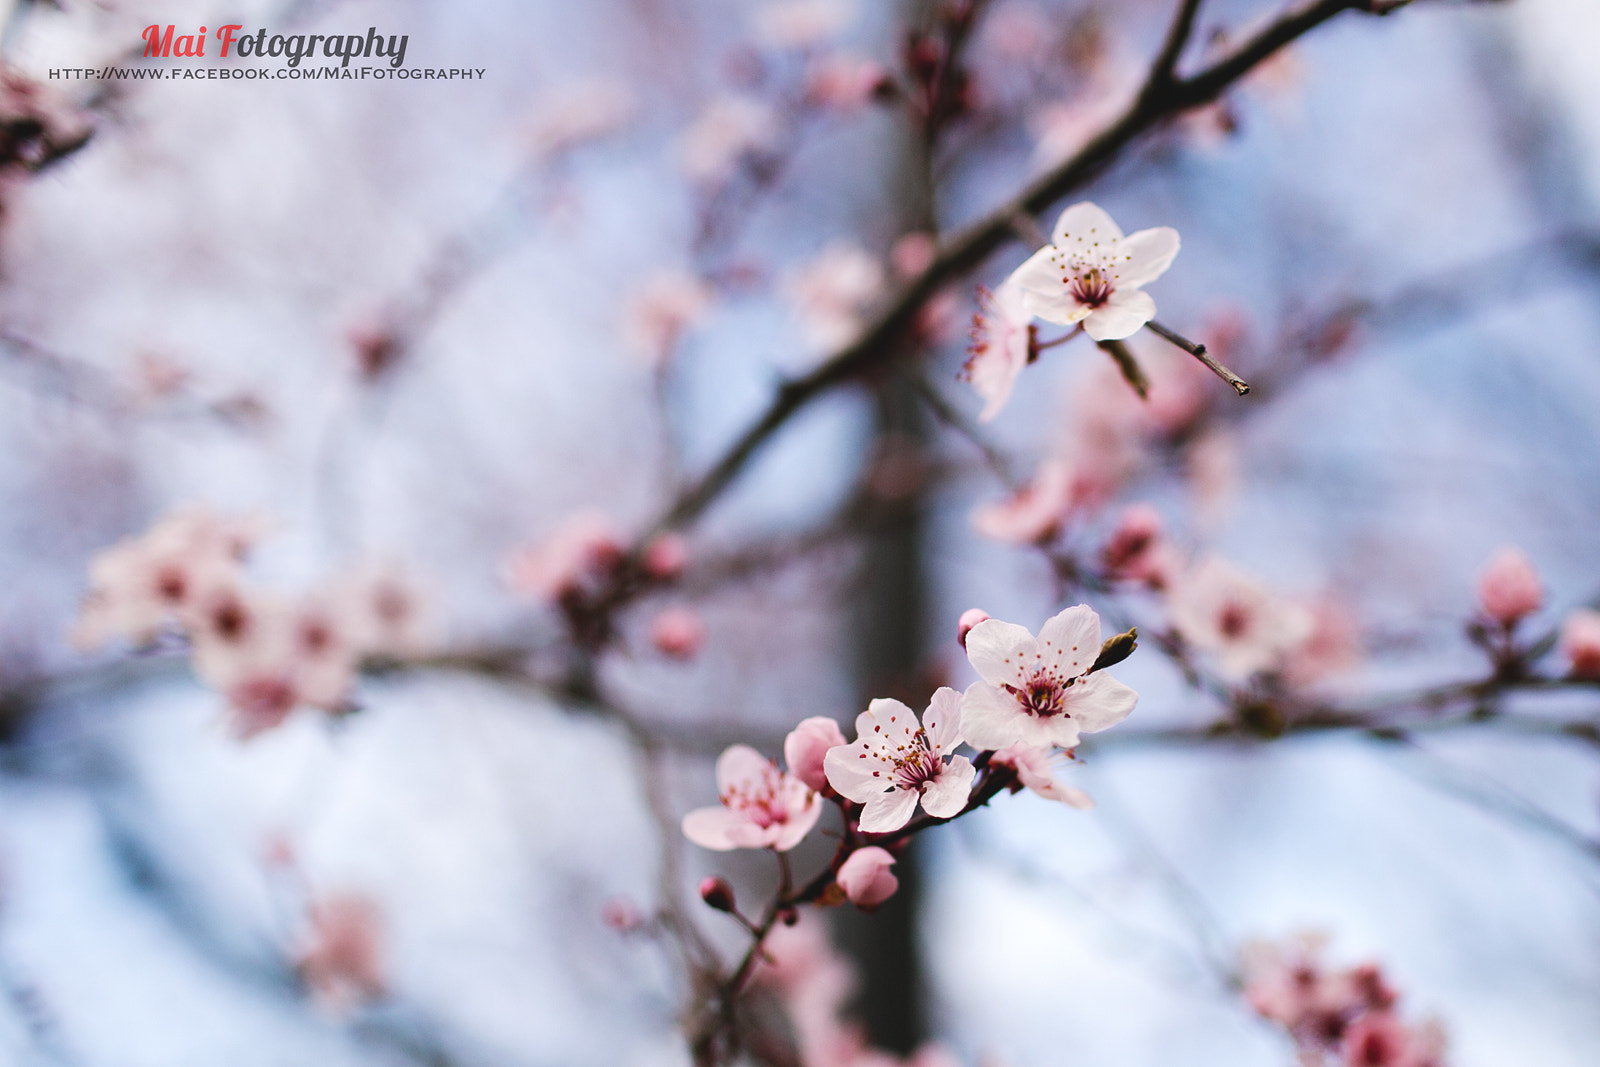 Photograph Sakura 3 by Mai Fotography on 500px